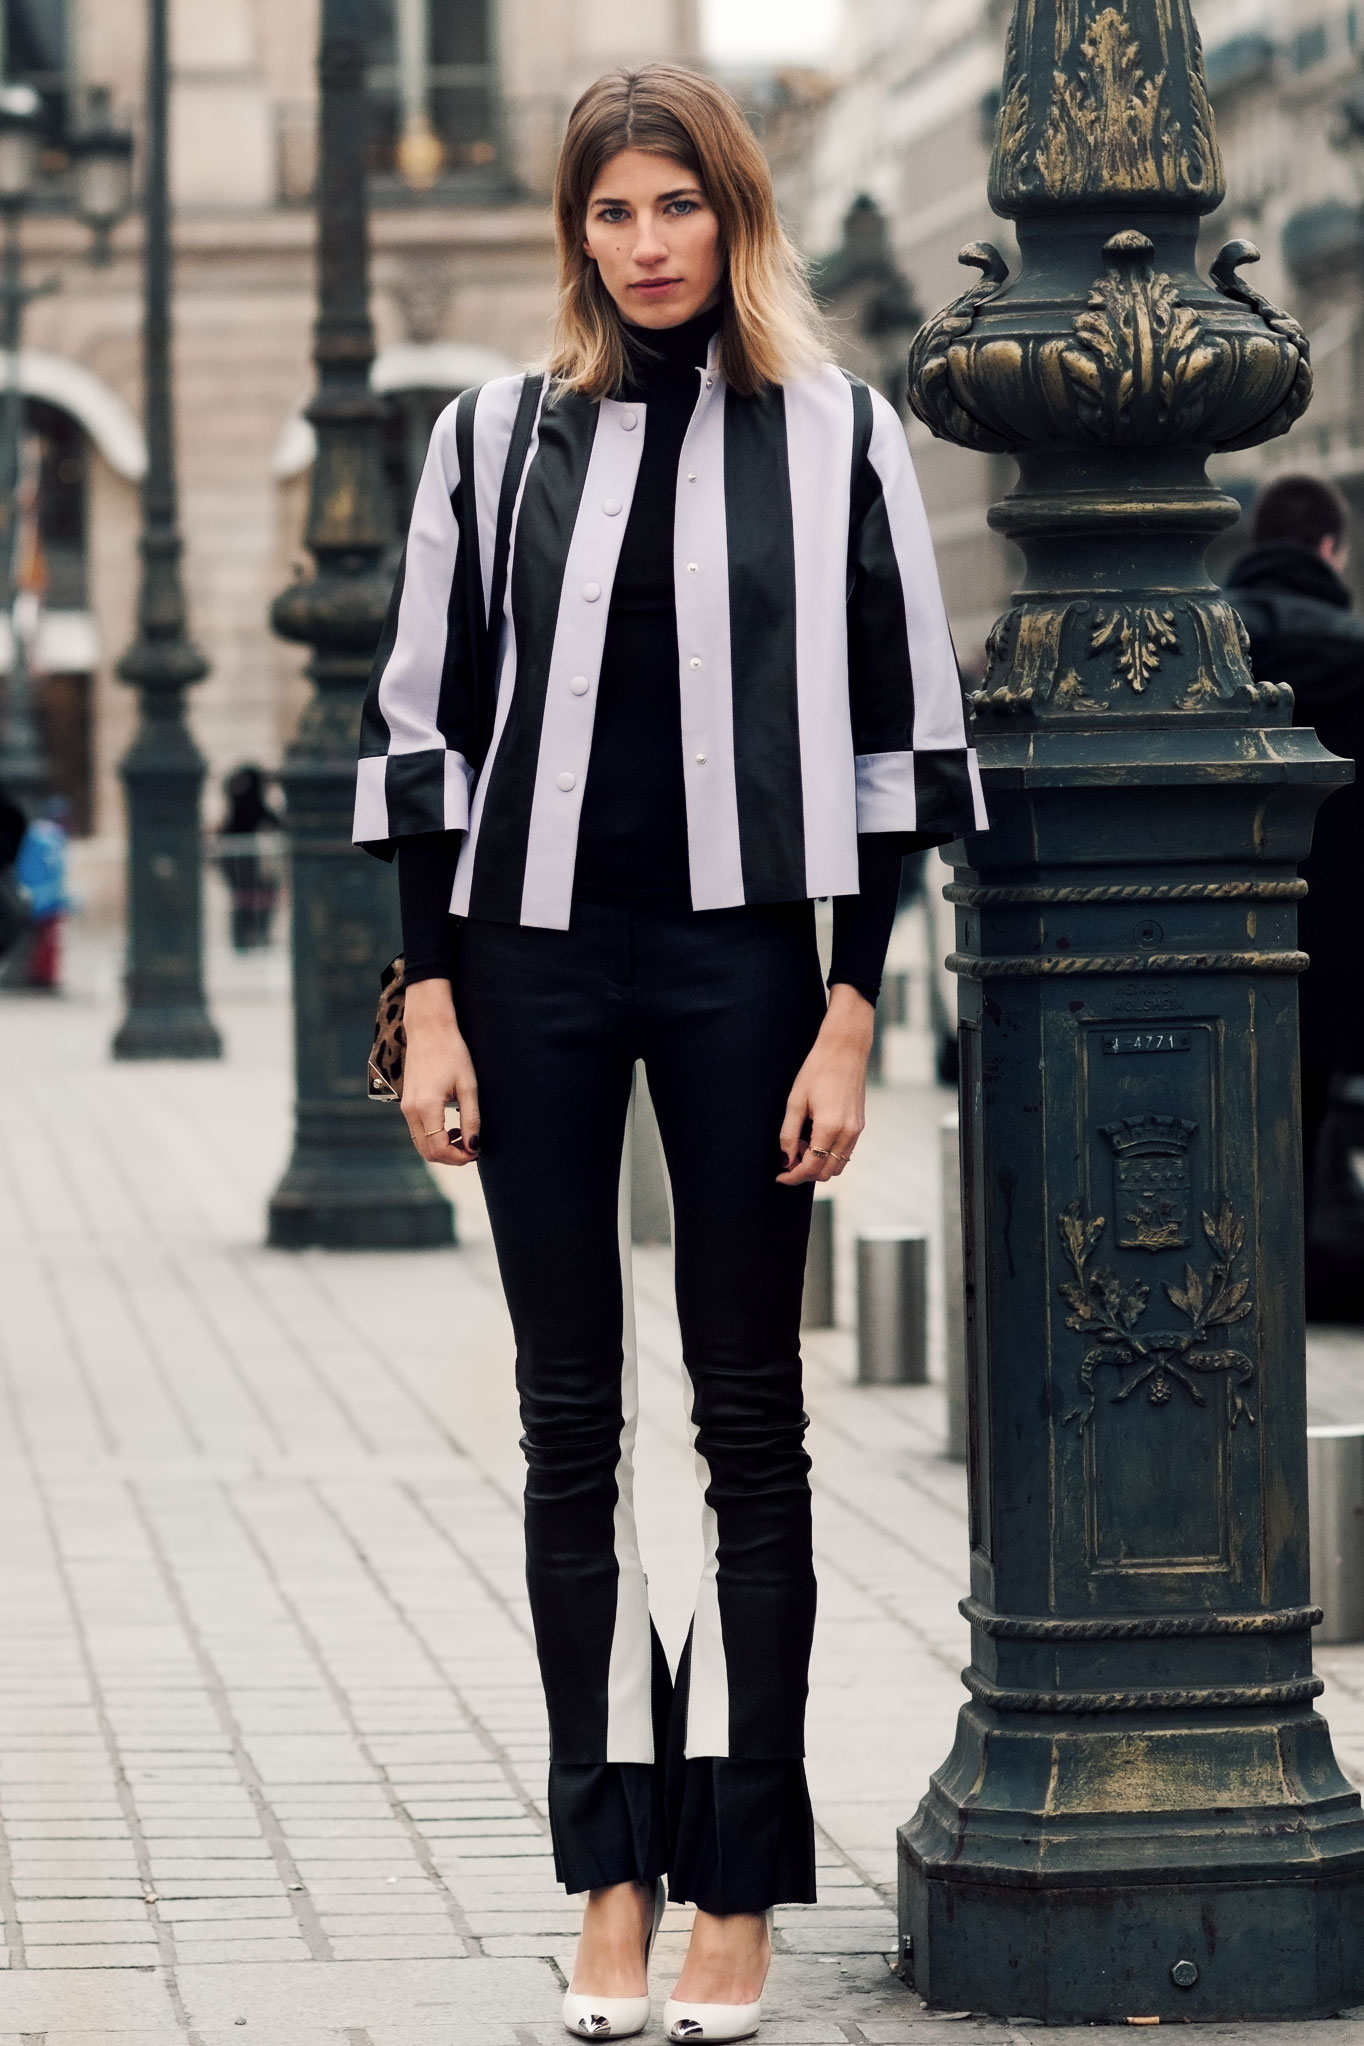 Veronica Heilbrunner at Paris Fashion Week